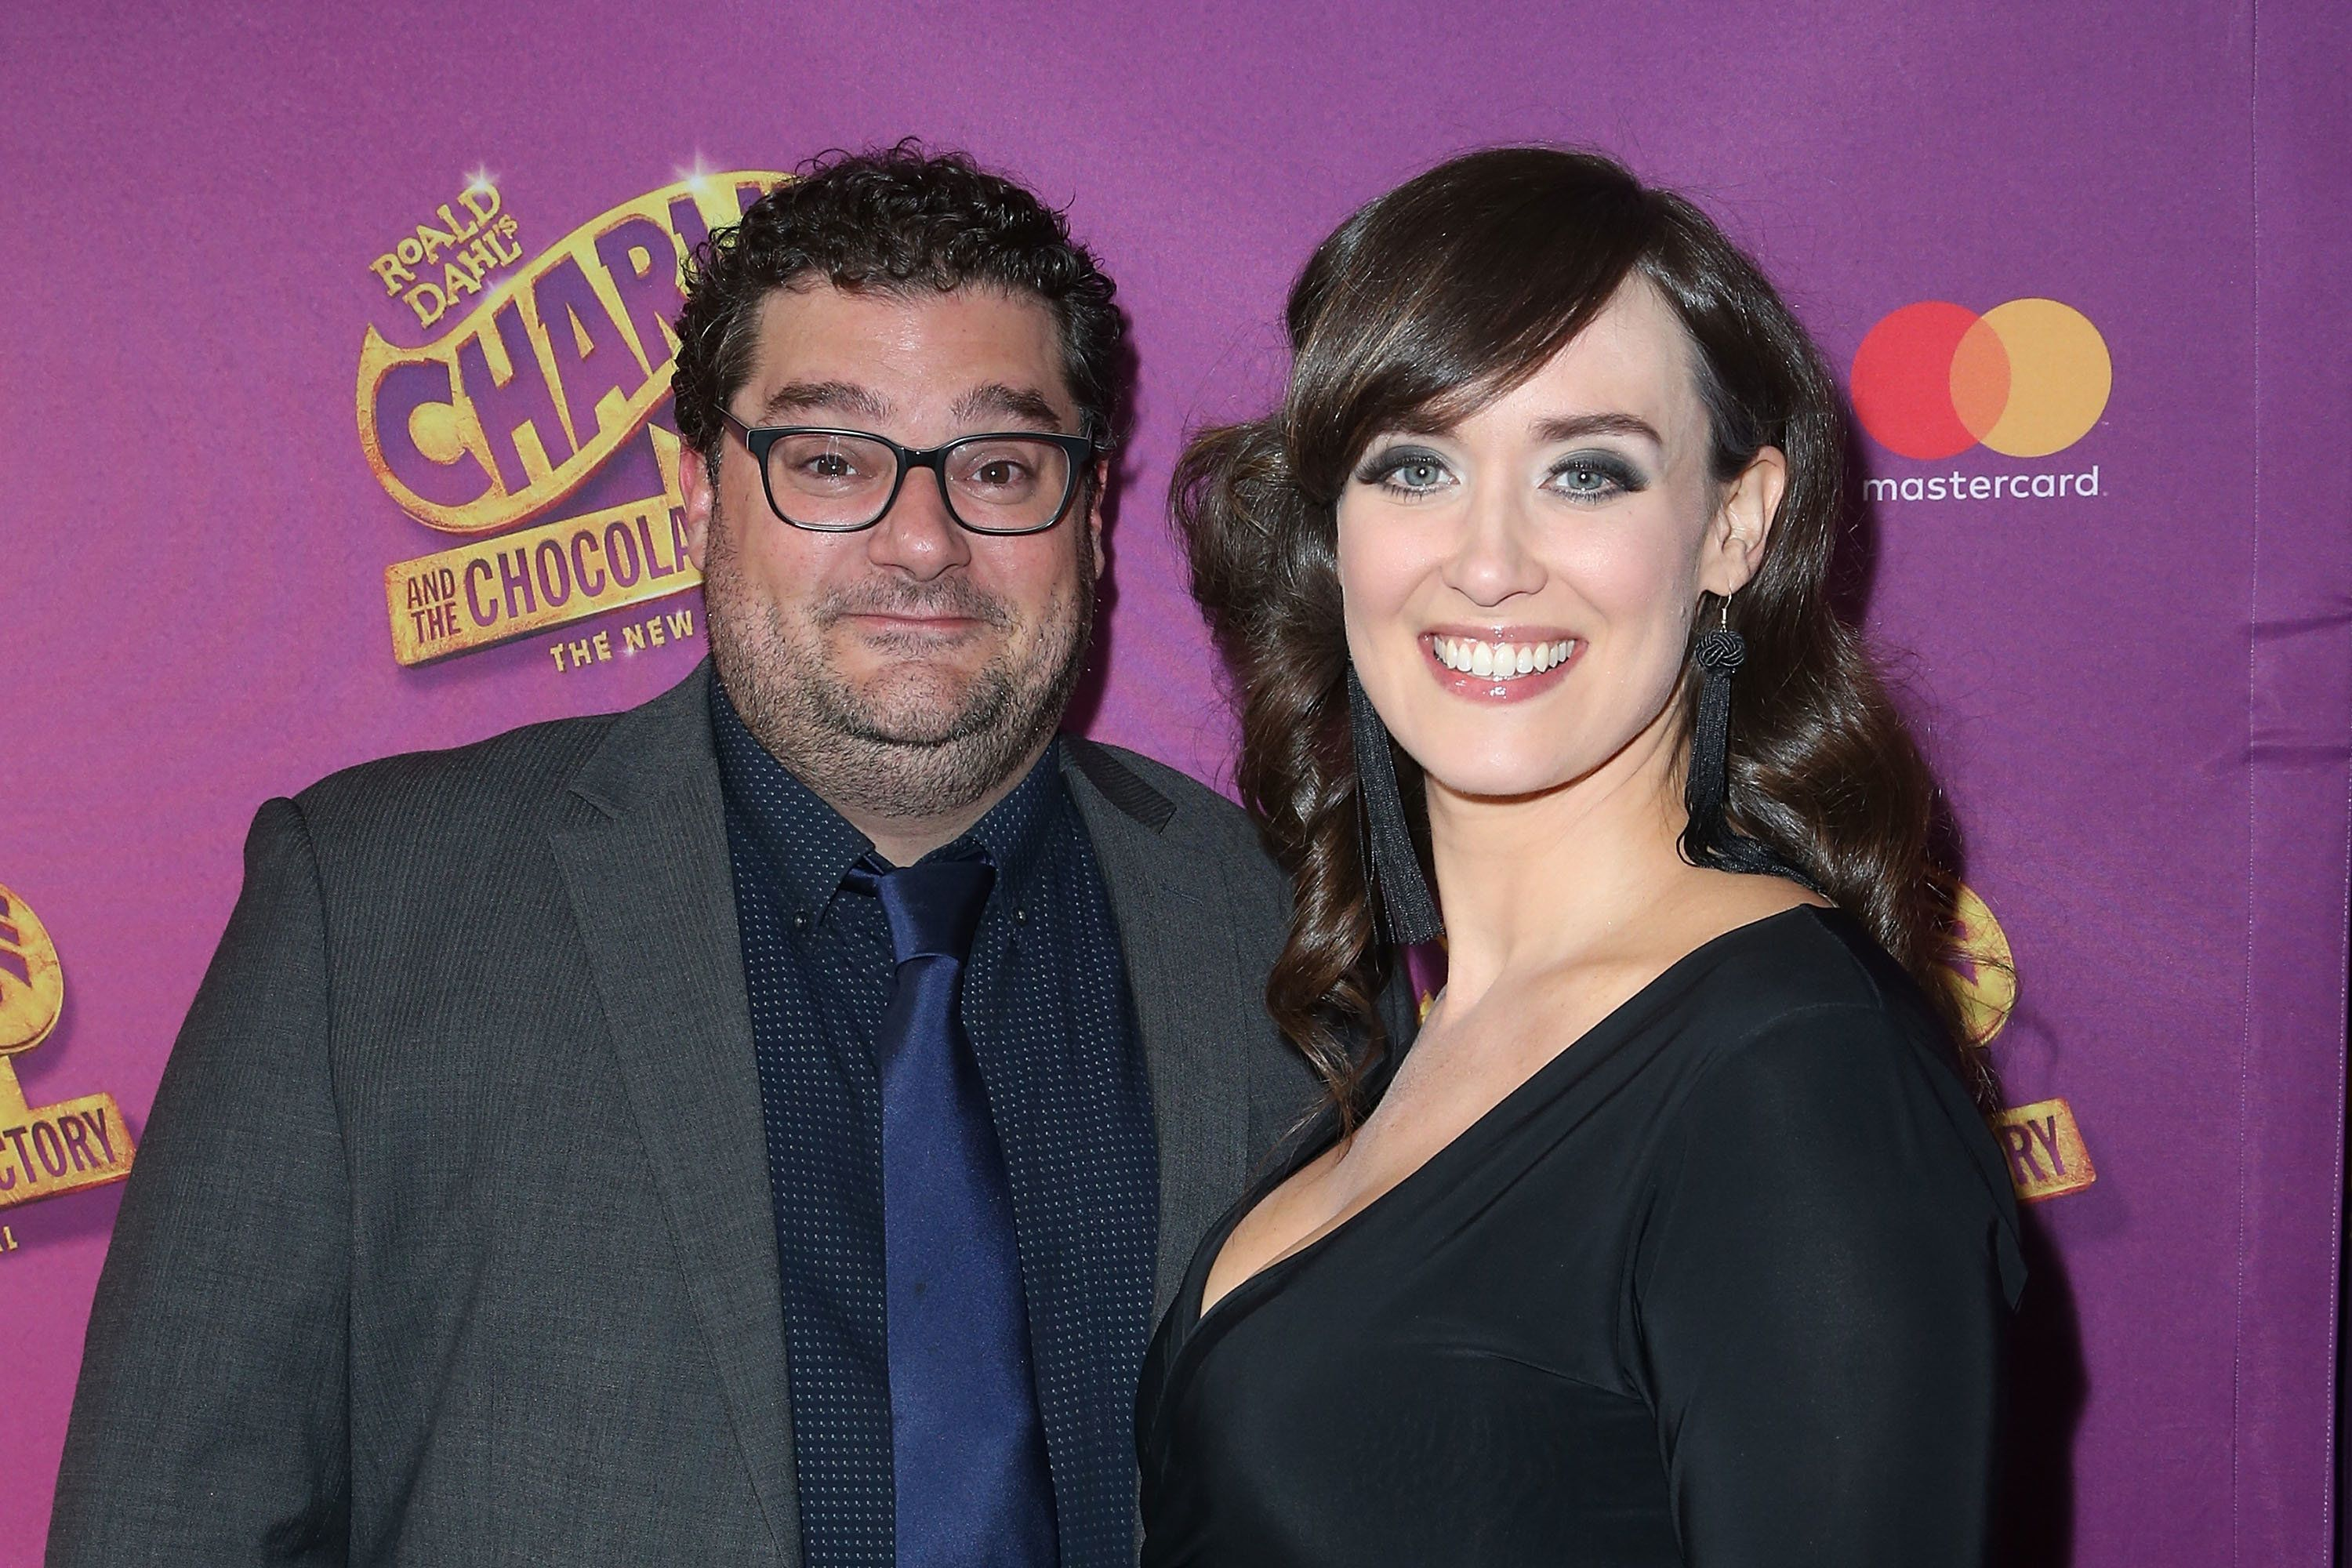 NEW YORK, NY - APRIL 23:  Bobby Moynihan and Brynn O'Malley attend the 'Charlie And The Chocolate Factory' Broadway opening night at at Lunt-Fontanne Theatre on April 23, 2017 in New York City.  (Photo by Jimi Celeste/Patrick McMullan via Getty Images)